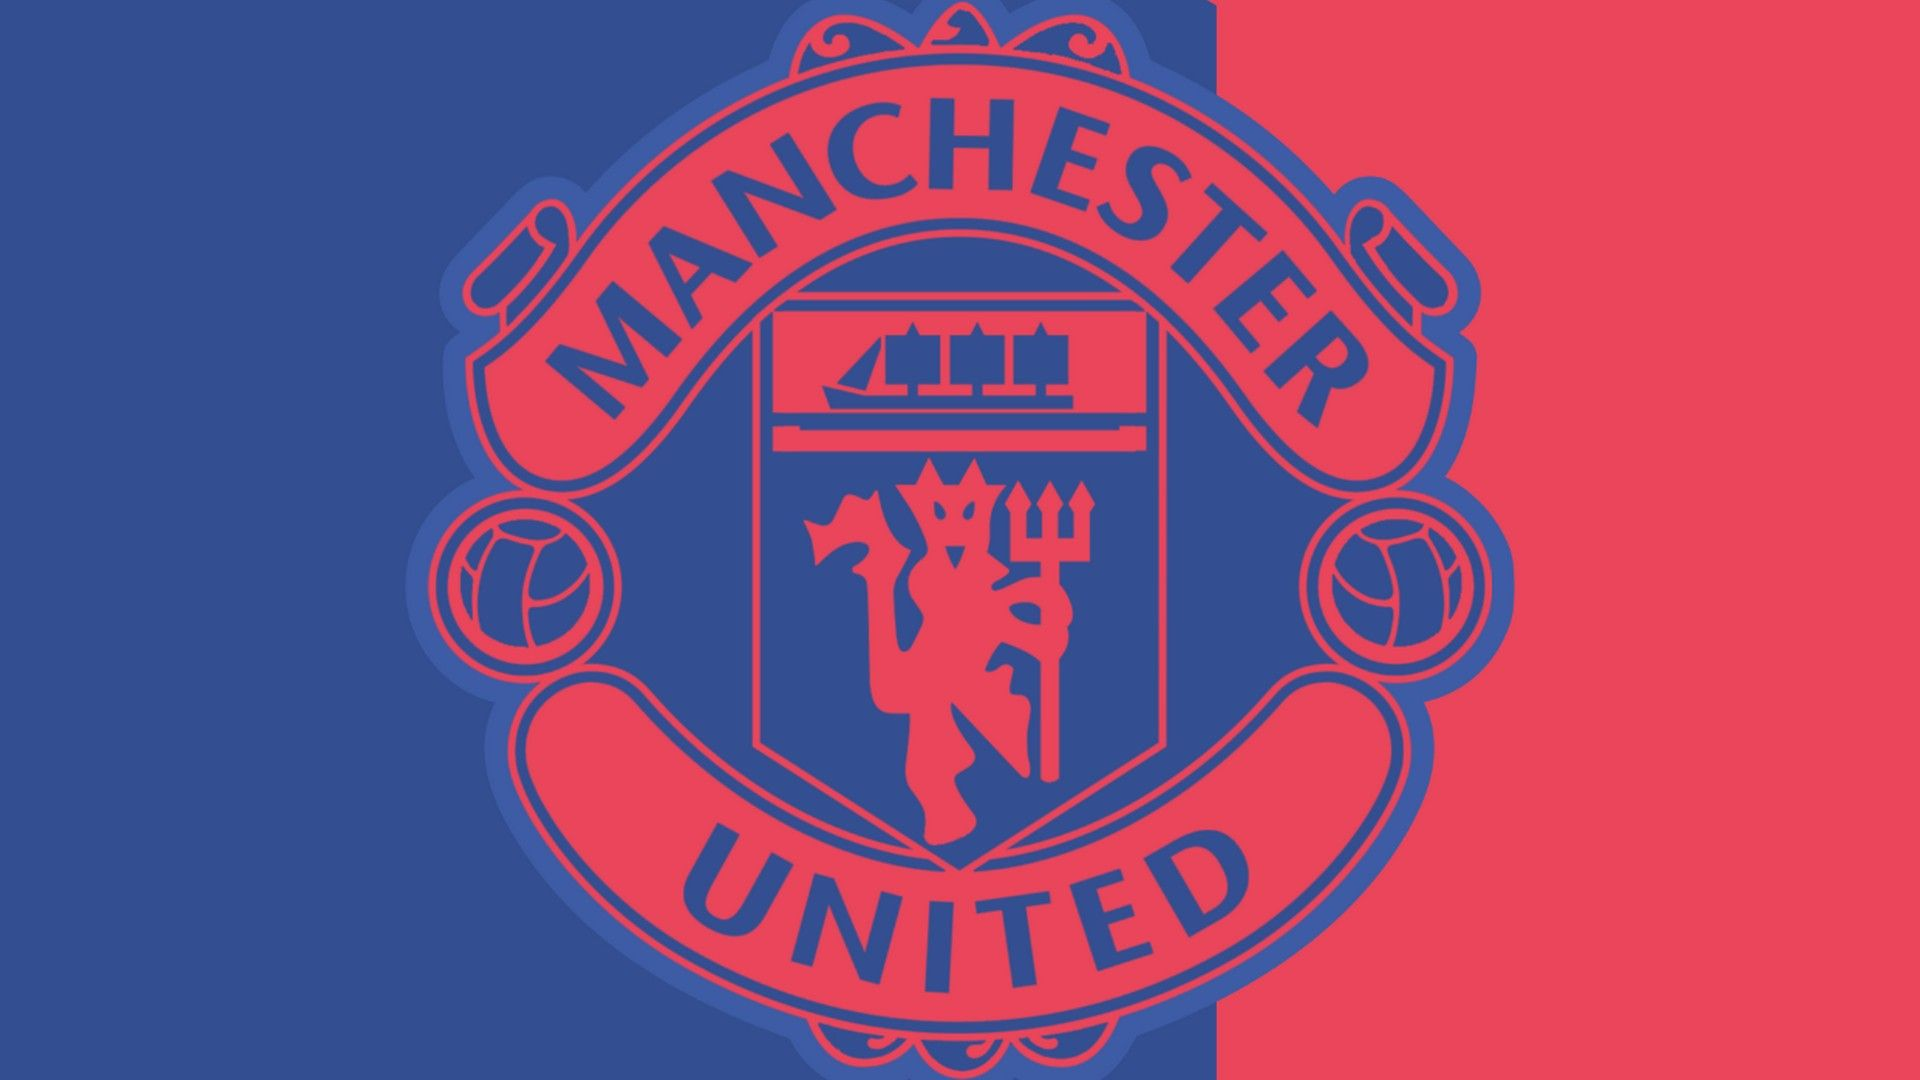 Hd Manchester United Backgrounds Best Football Wallpaper Hd Football Wallpaper Team Wallpaper Manchester United Wallpaper